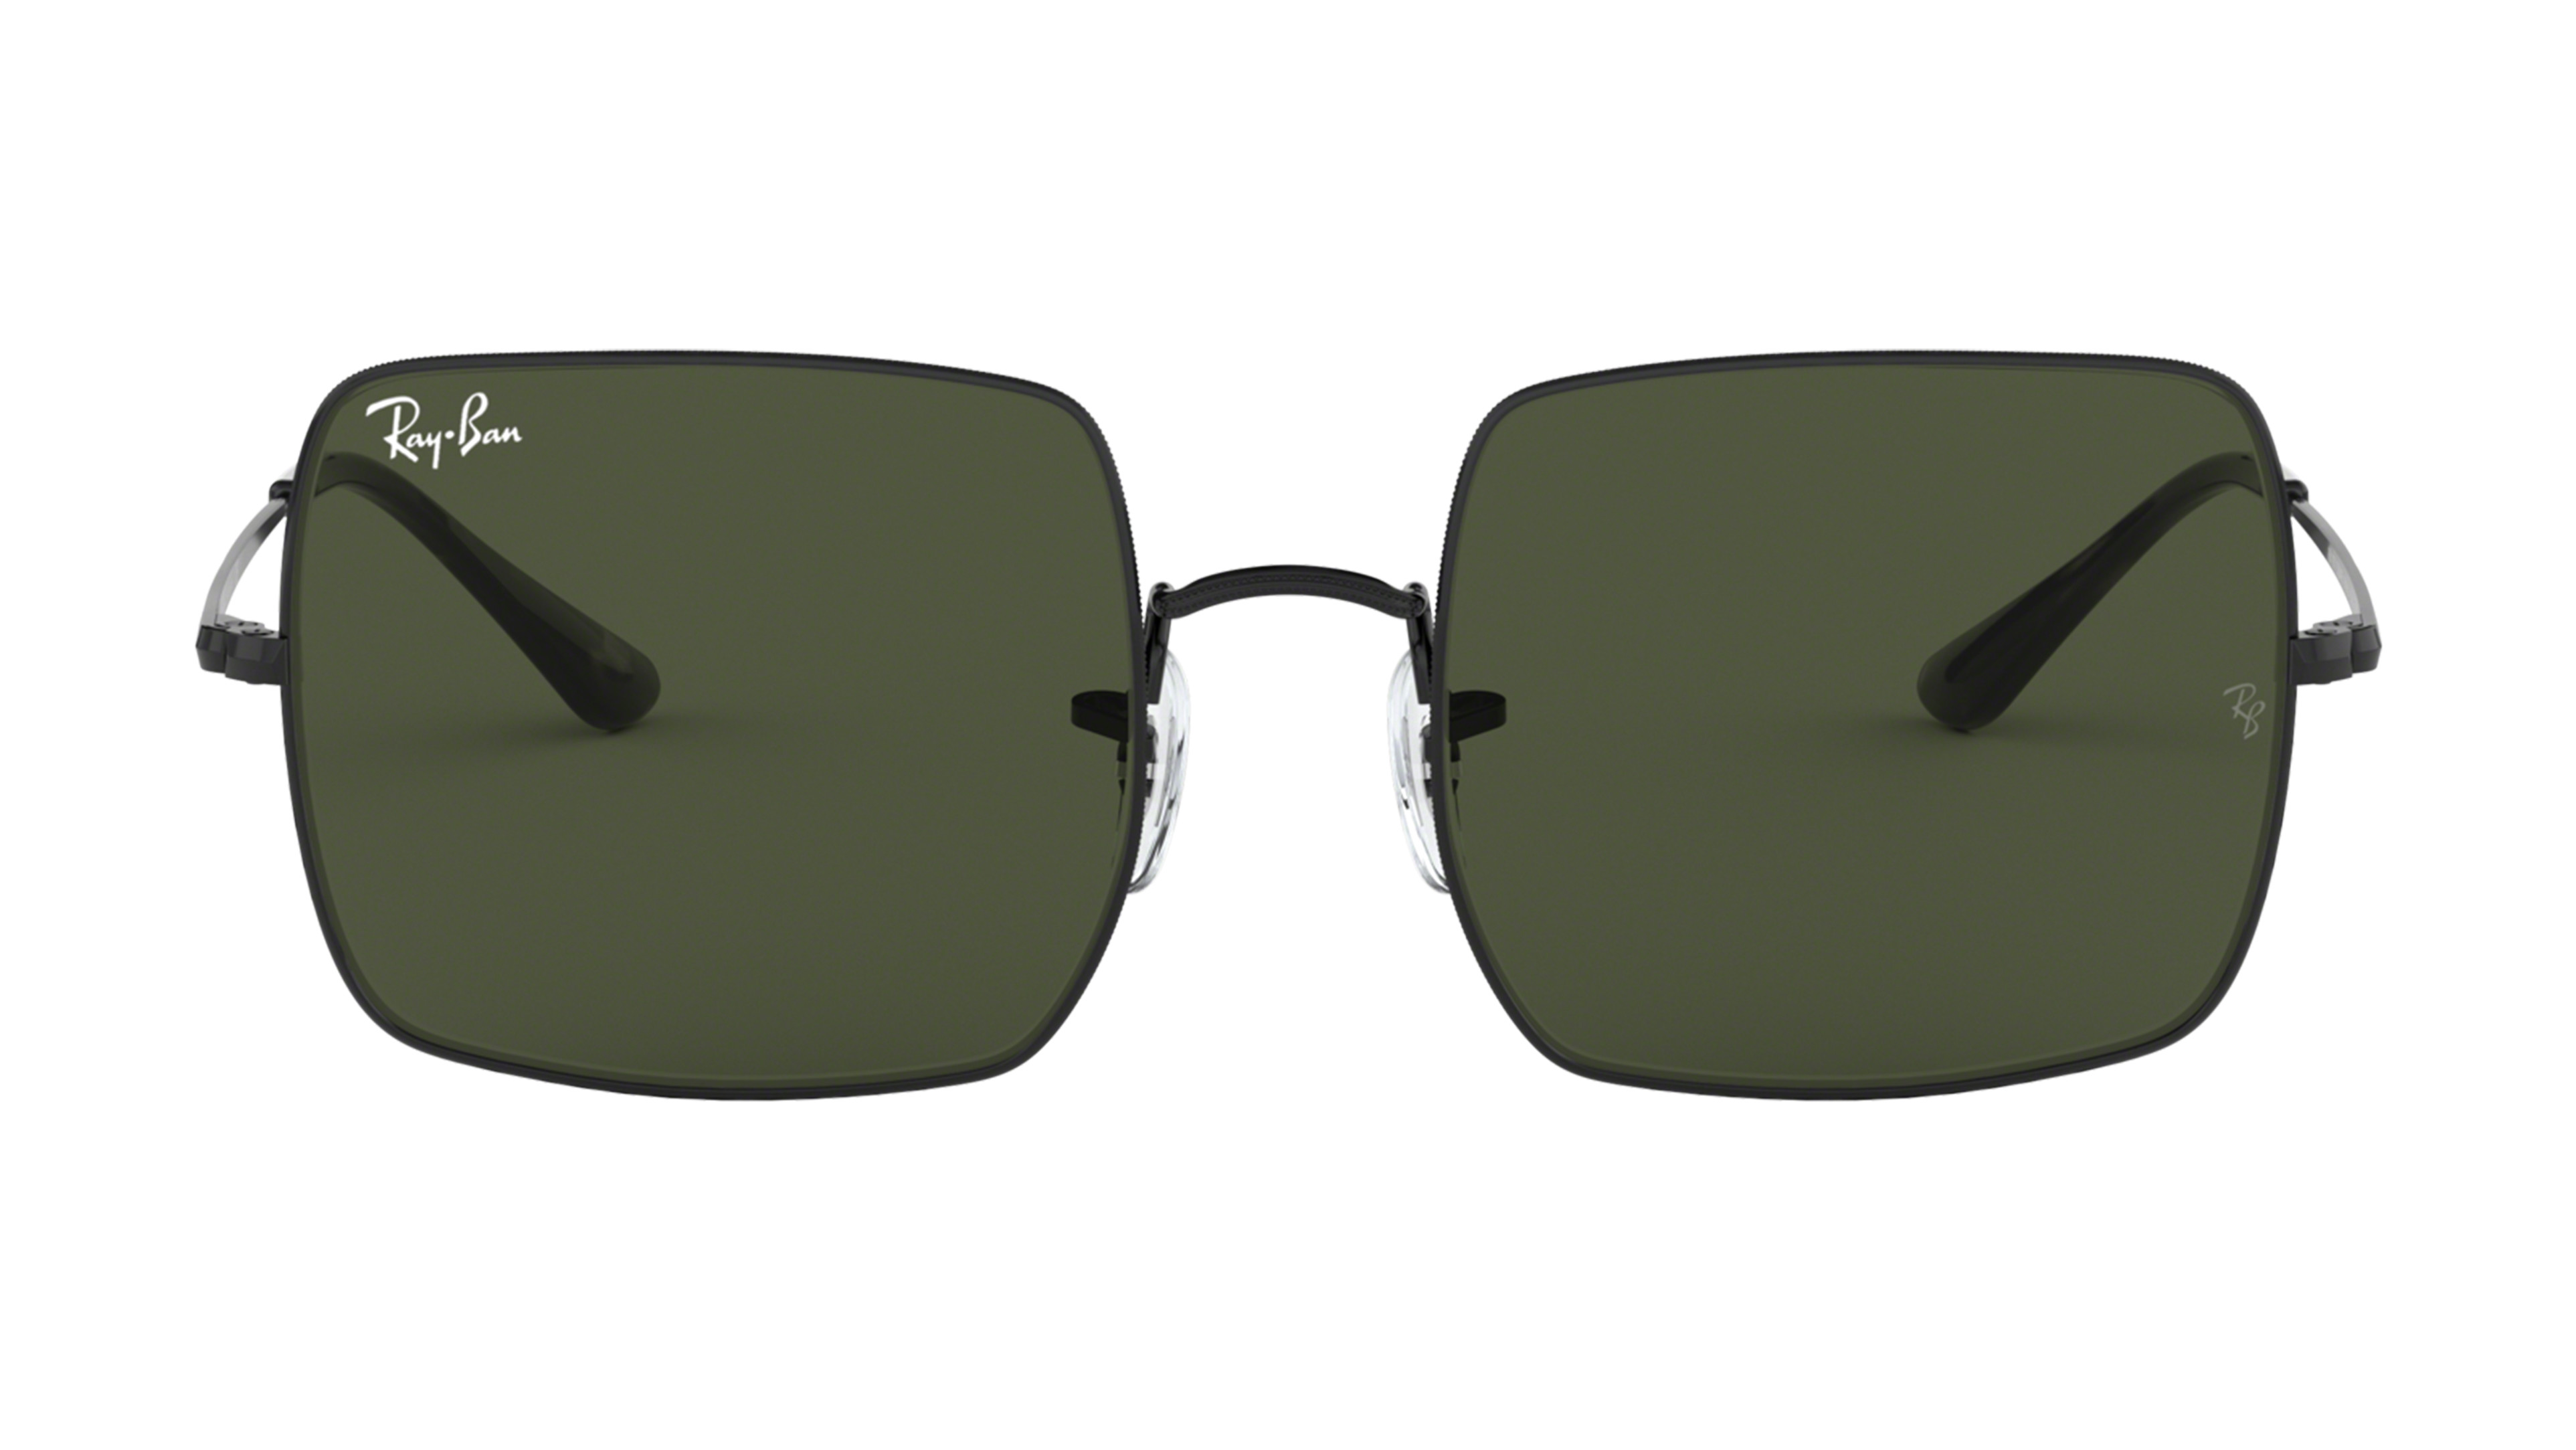 8056597054003-front-Ray-Ban-0RB1971-914831